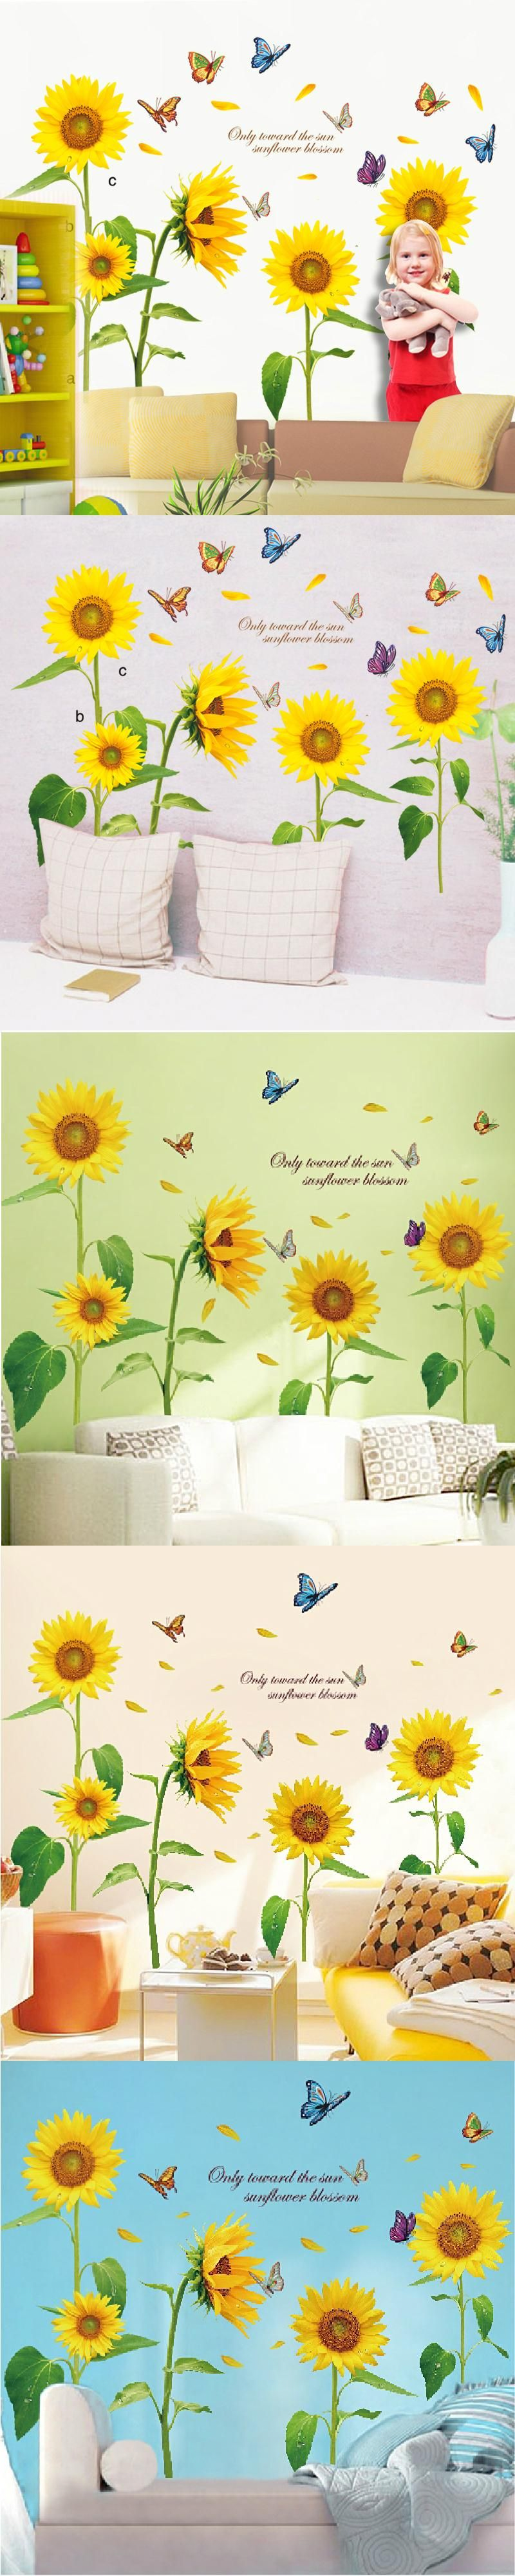 Pstoral Yellow Sun Flowers Butterfly Wall Stickers Decoration for ...